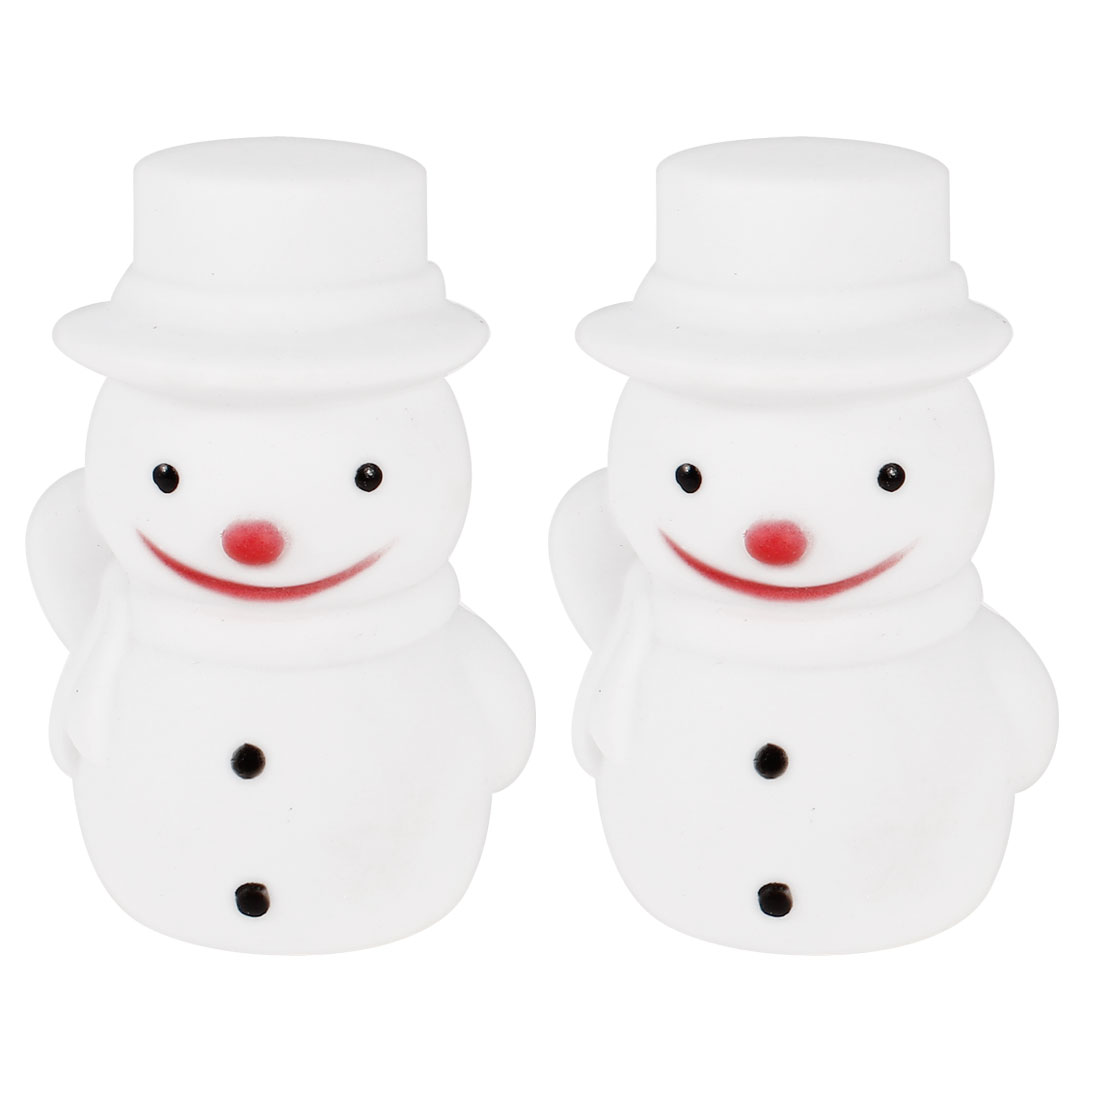 2 Pcs Snowman Shaped Colorful LED Night Light Table Lamp White